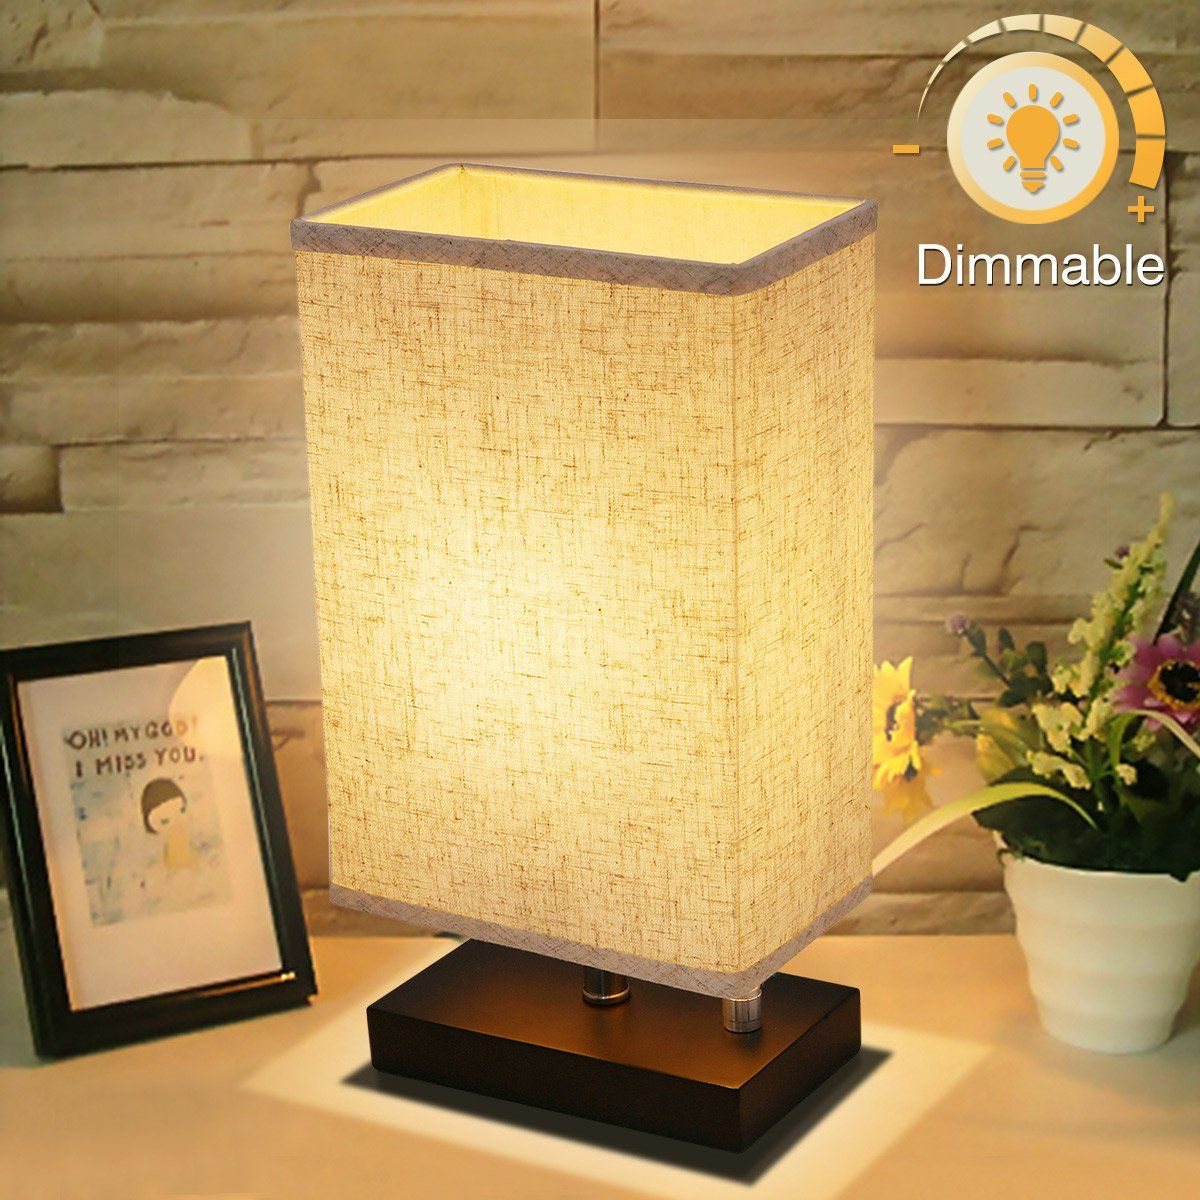 nightstand lamp with dimmer cream dimmable bedside table lamp kingso ul listed plug in nightstand lamp with dimmer knob switch e26 fabric shade minimalist solid wooden base for bedroom